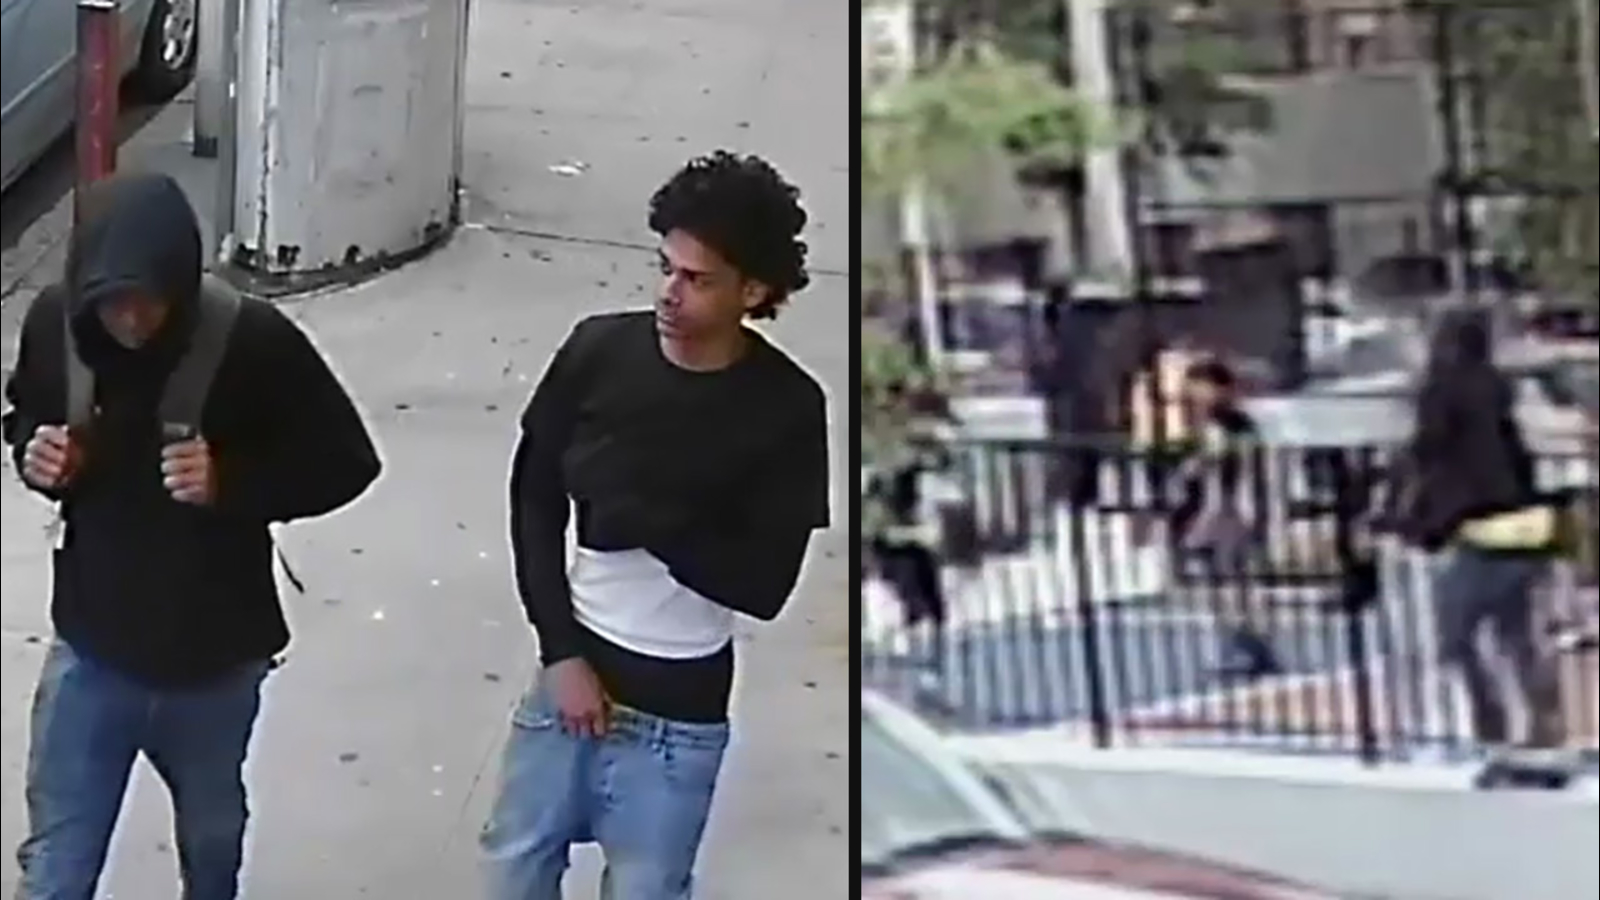 Bronx playground shooting wounds 2, sends dozens scrambling for safety